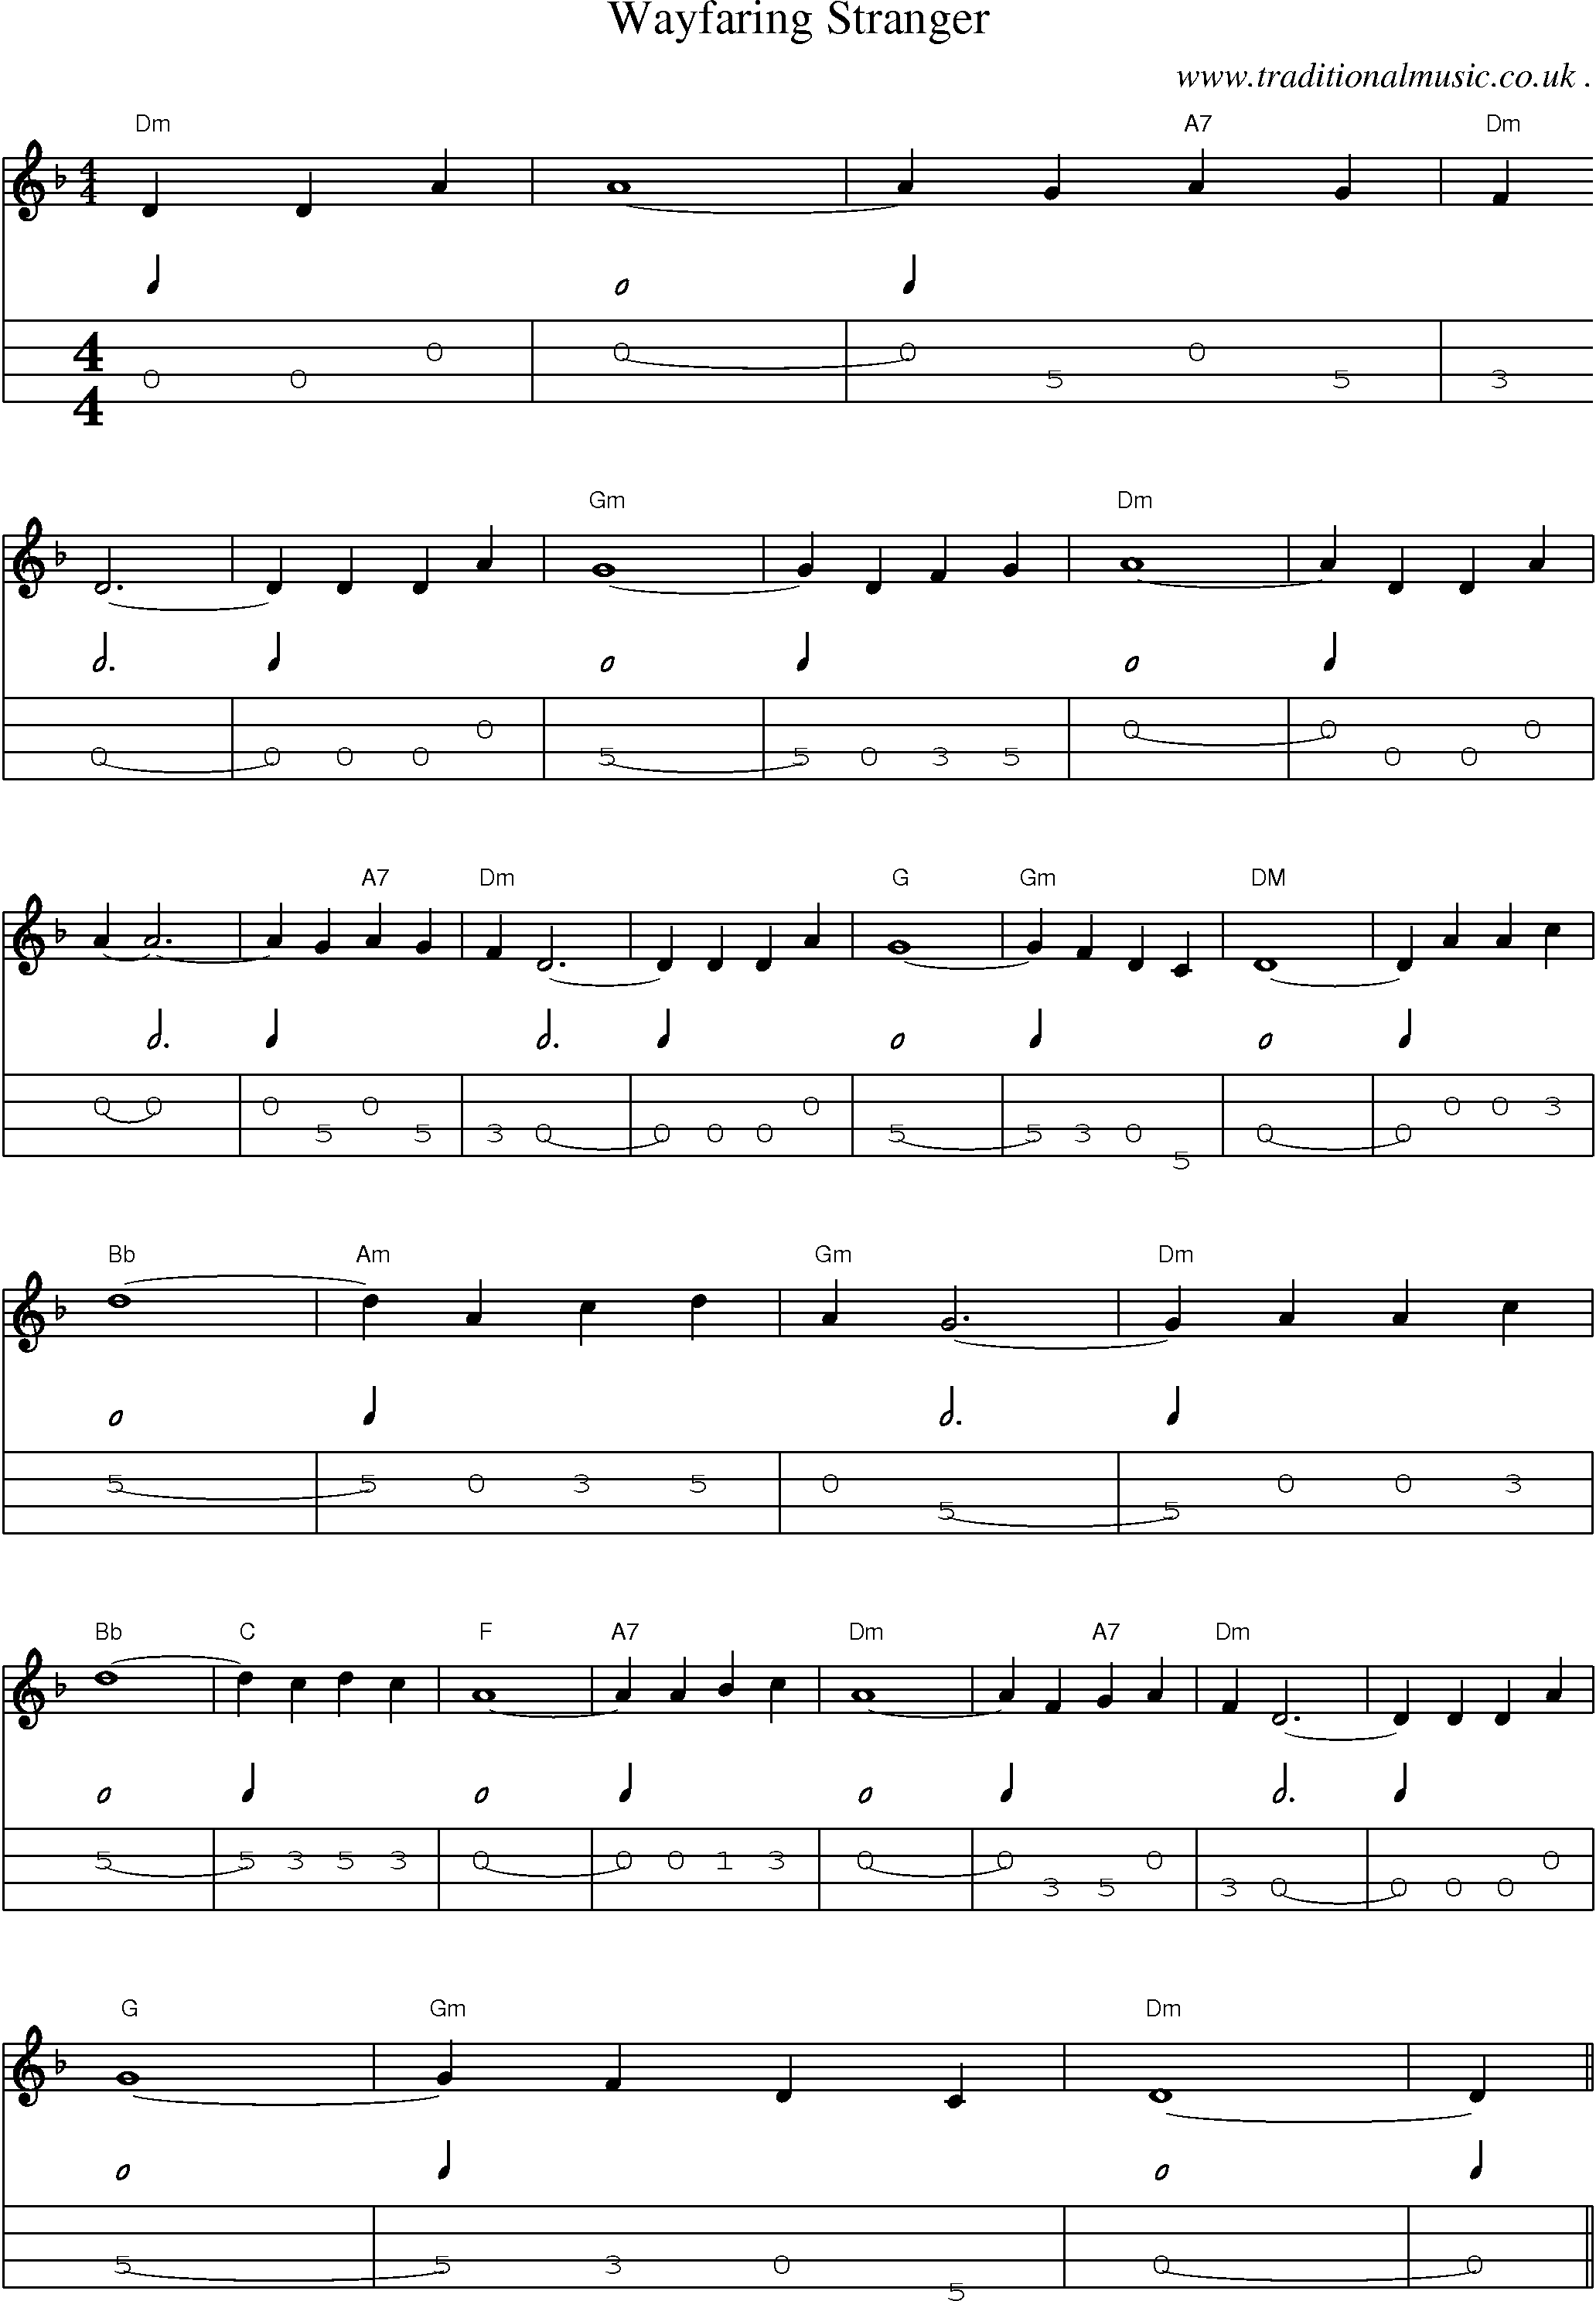 Music score and guitar tabs for wayfaring stranger tabs music score and mandolin tabs for wayfaring stranger hexwebz Images